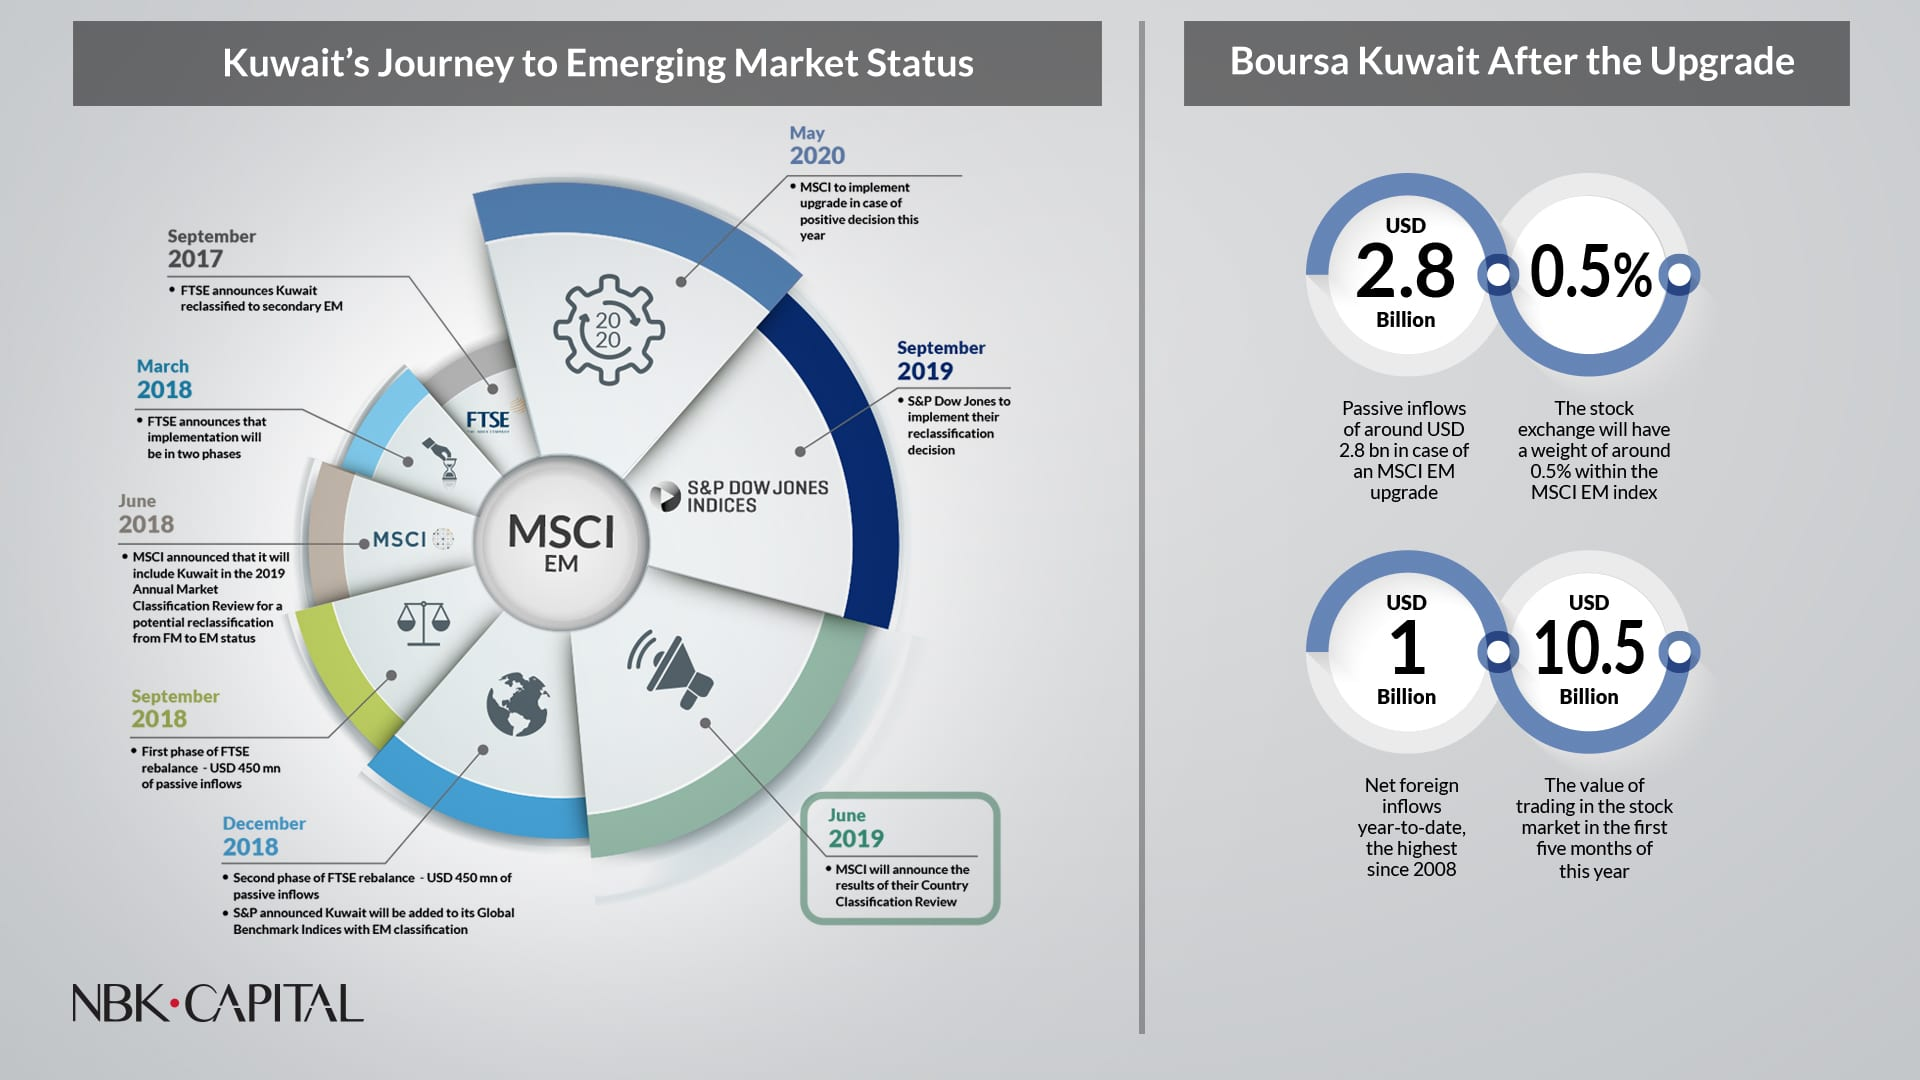 NBK Capital: $2.8 billion Expected Liquidity Flow To Boursa Kuwait in Case of Upgrade to MSCI EM